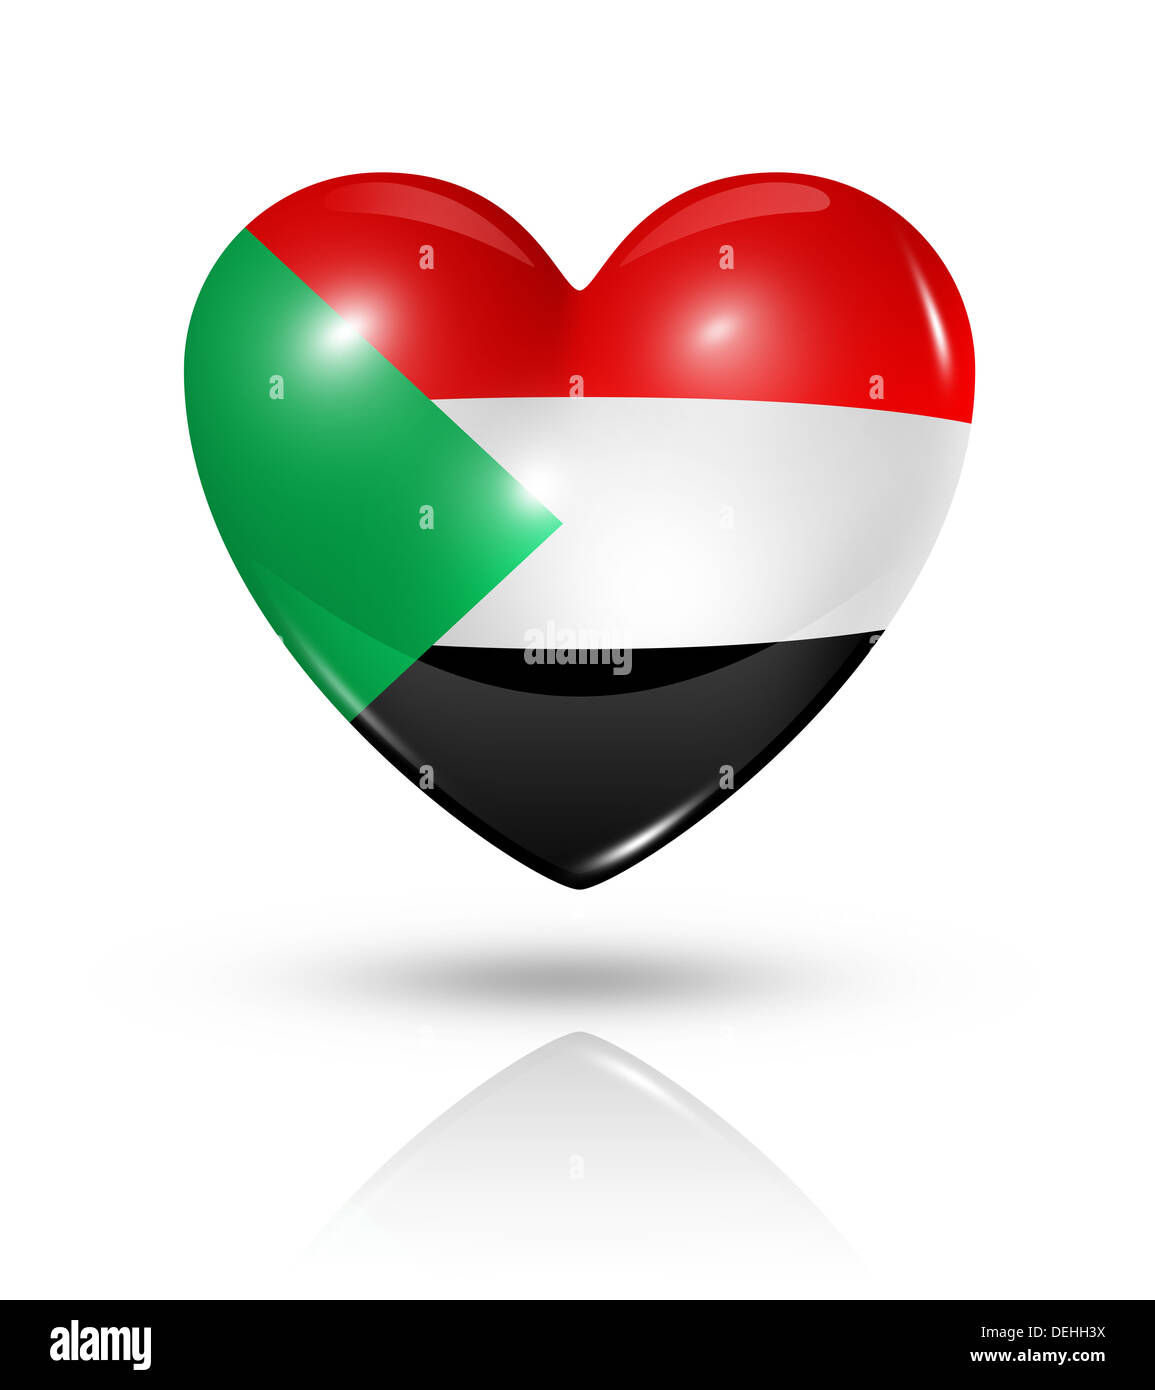 Love sudan symbol 3d heart flag icon isolated on white with love sudan symbol 3d heart flag icon isolated on white with clipping path buycottarizona Images